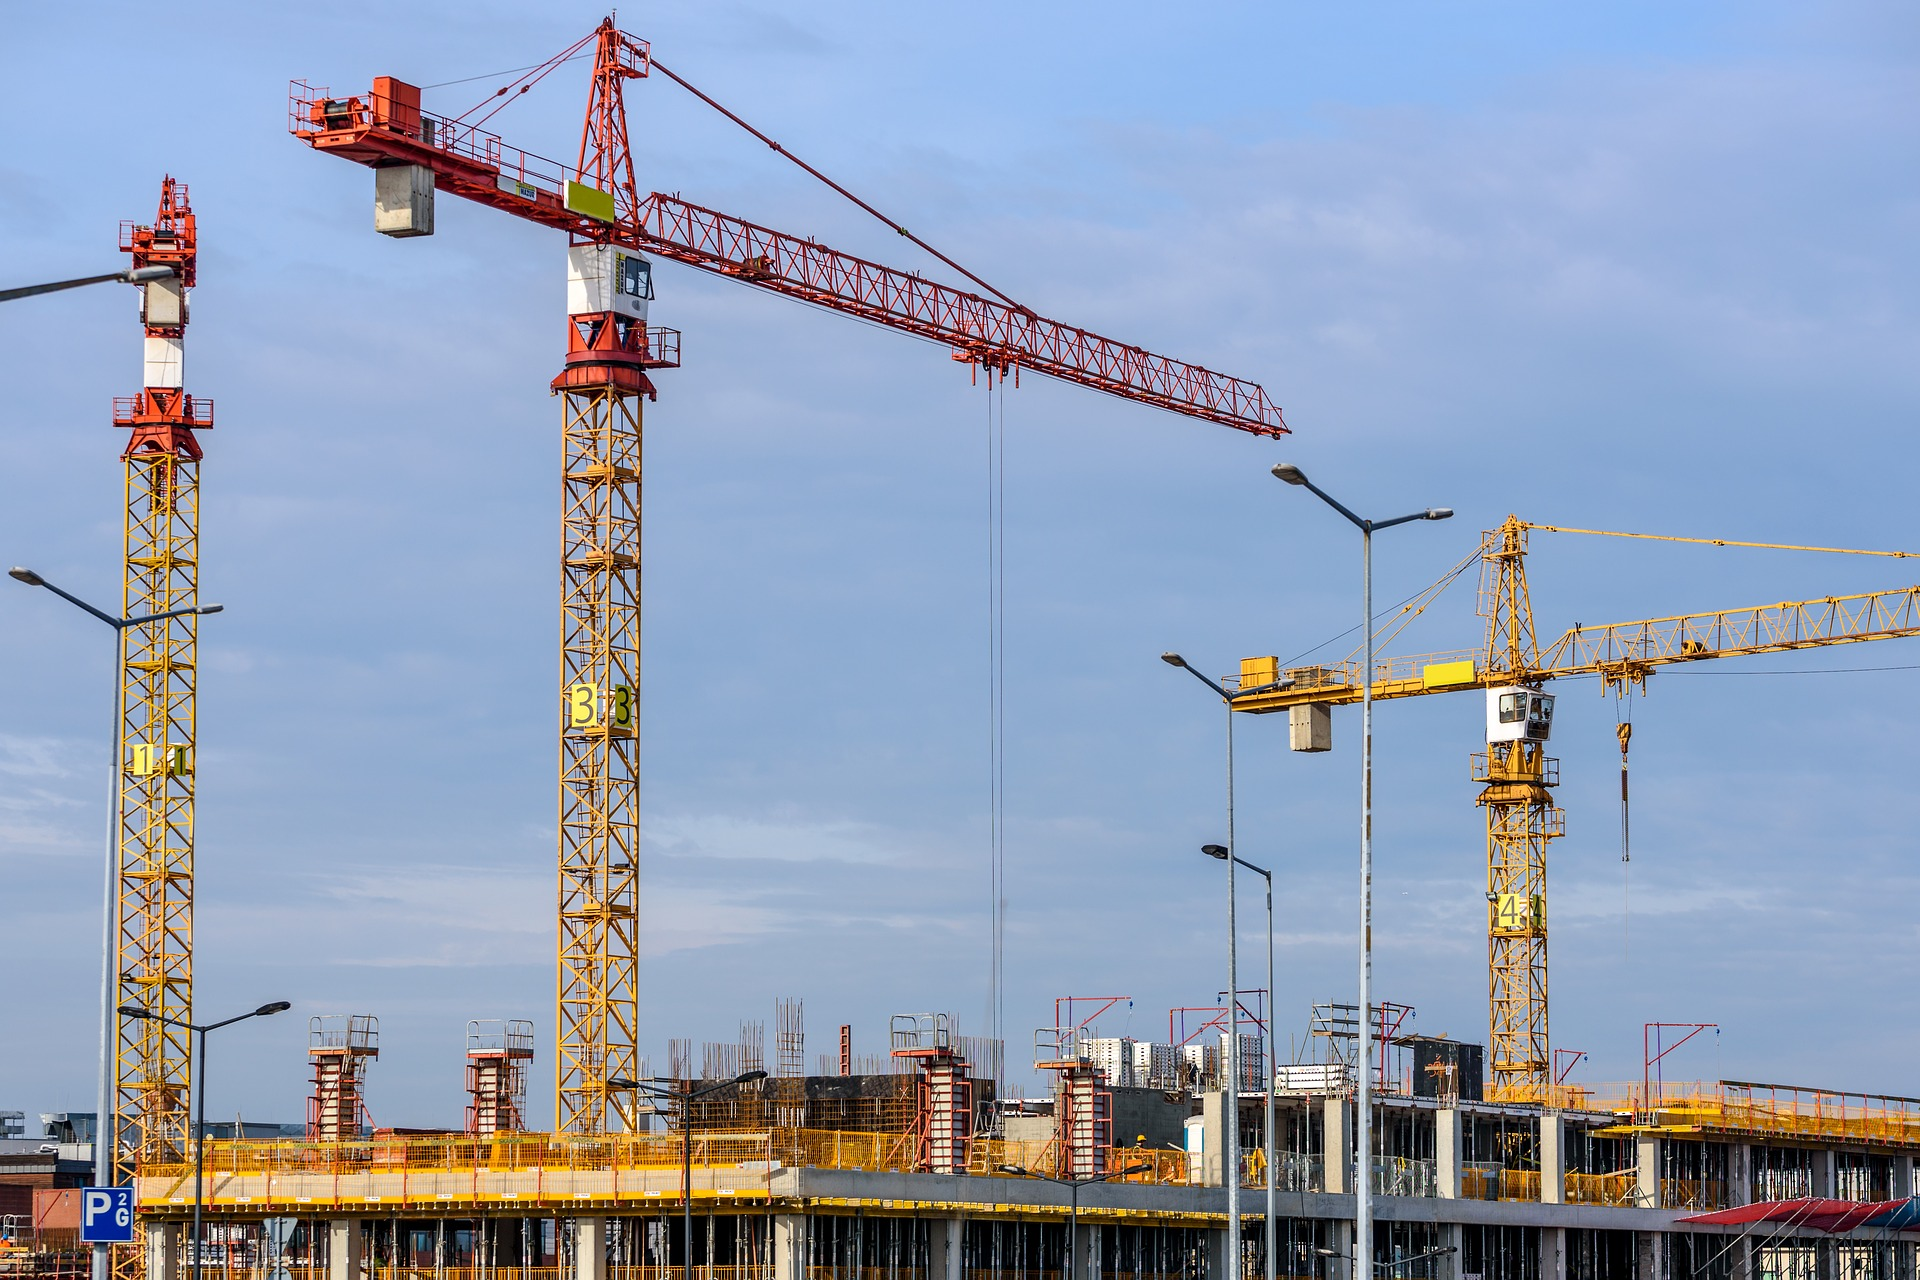 Cranes involved in building a new complex